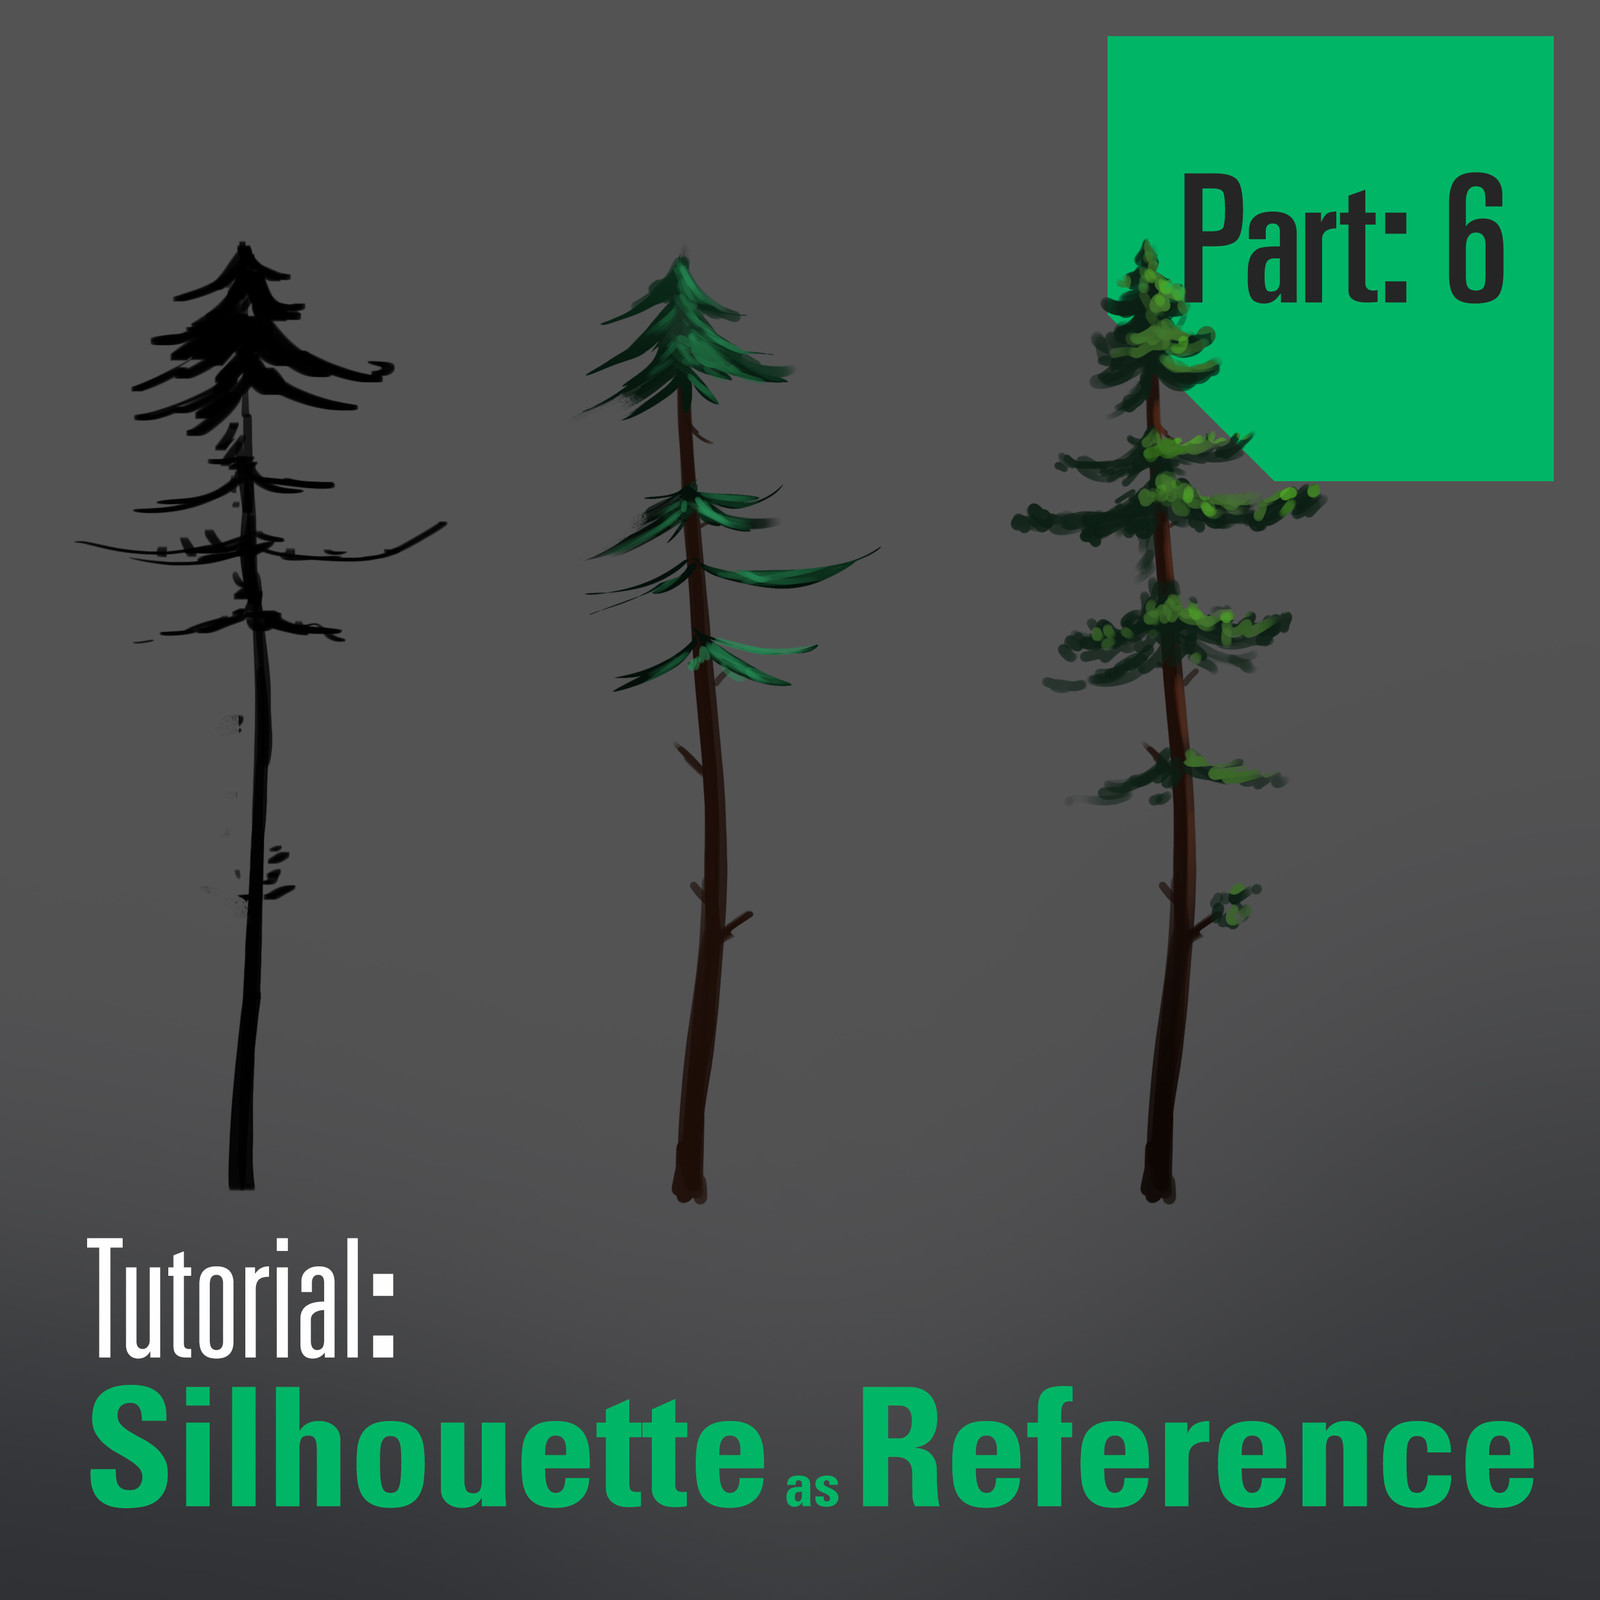 Tree Tutorial - Silhouette as Reference - Part 6